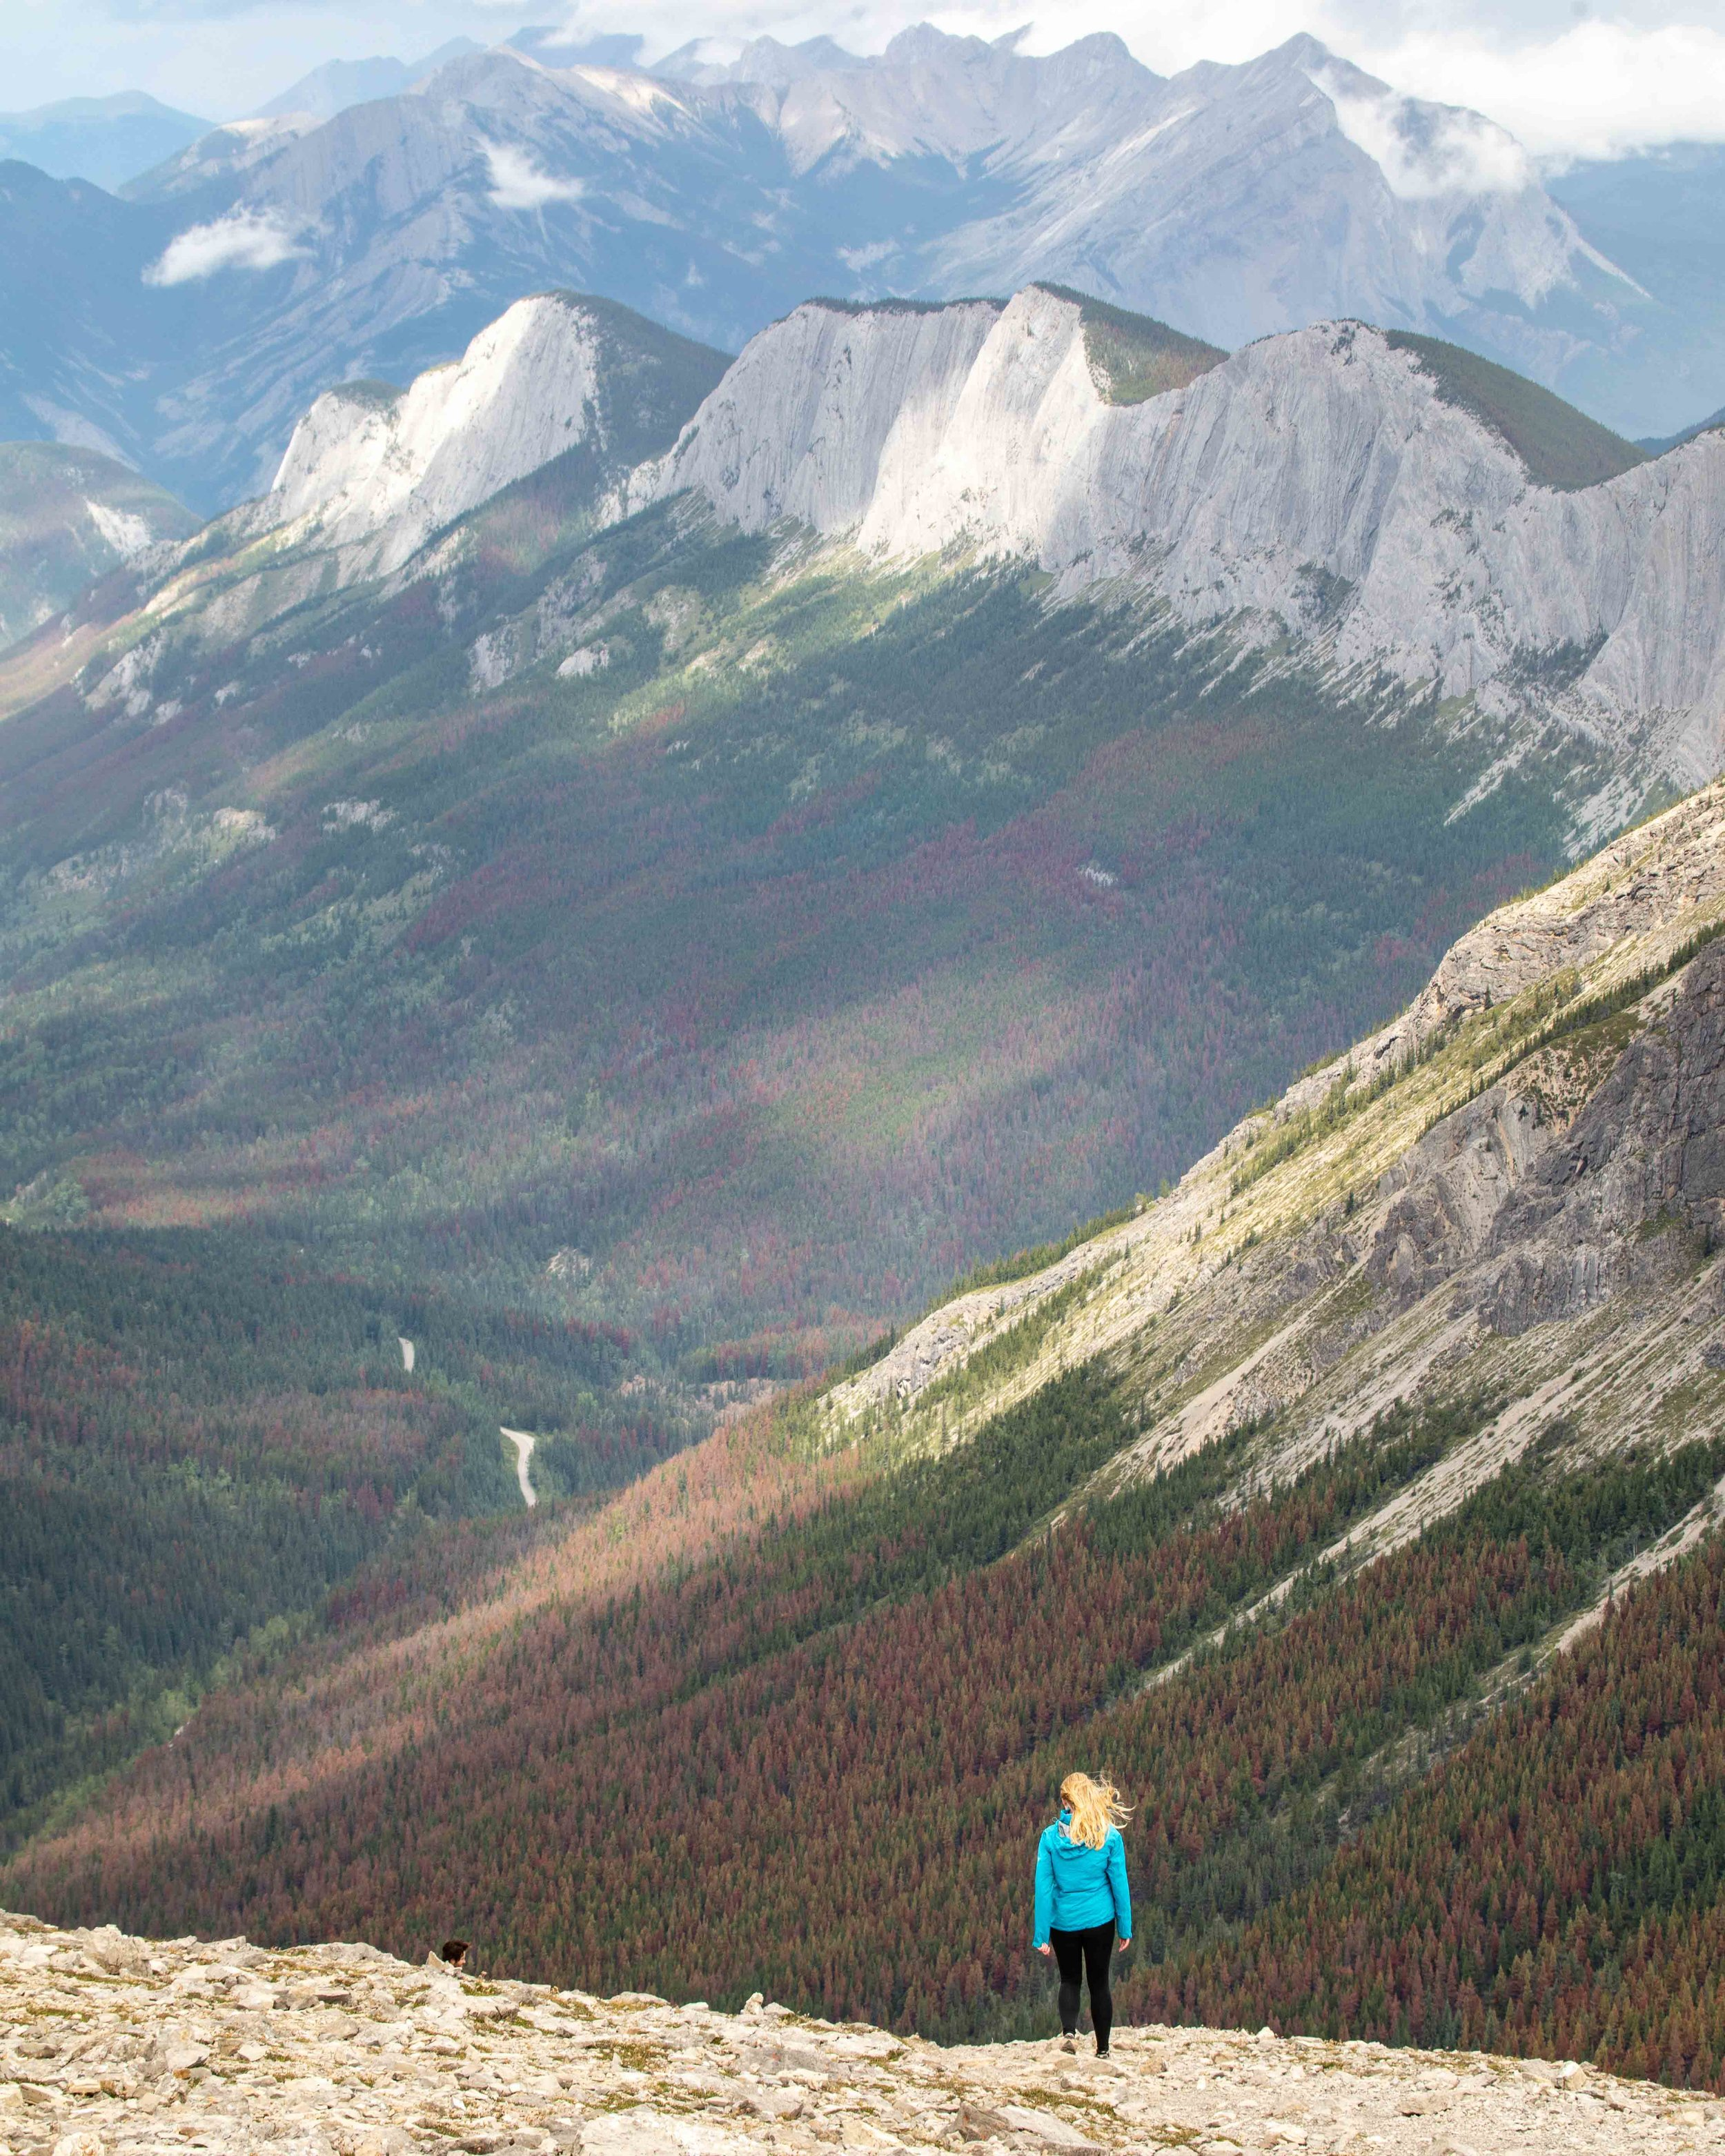 The descent from the summit of Sulphur Skyline